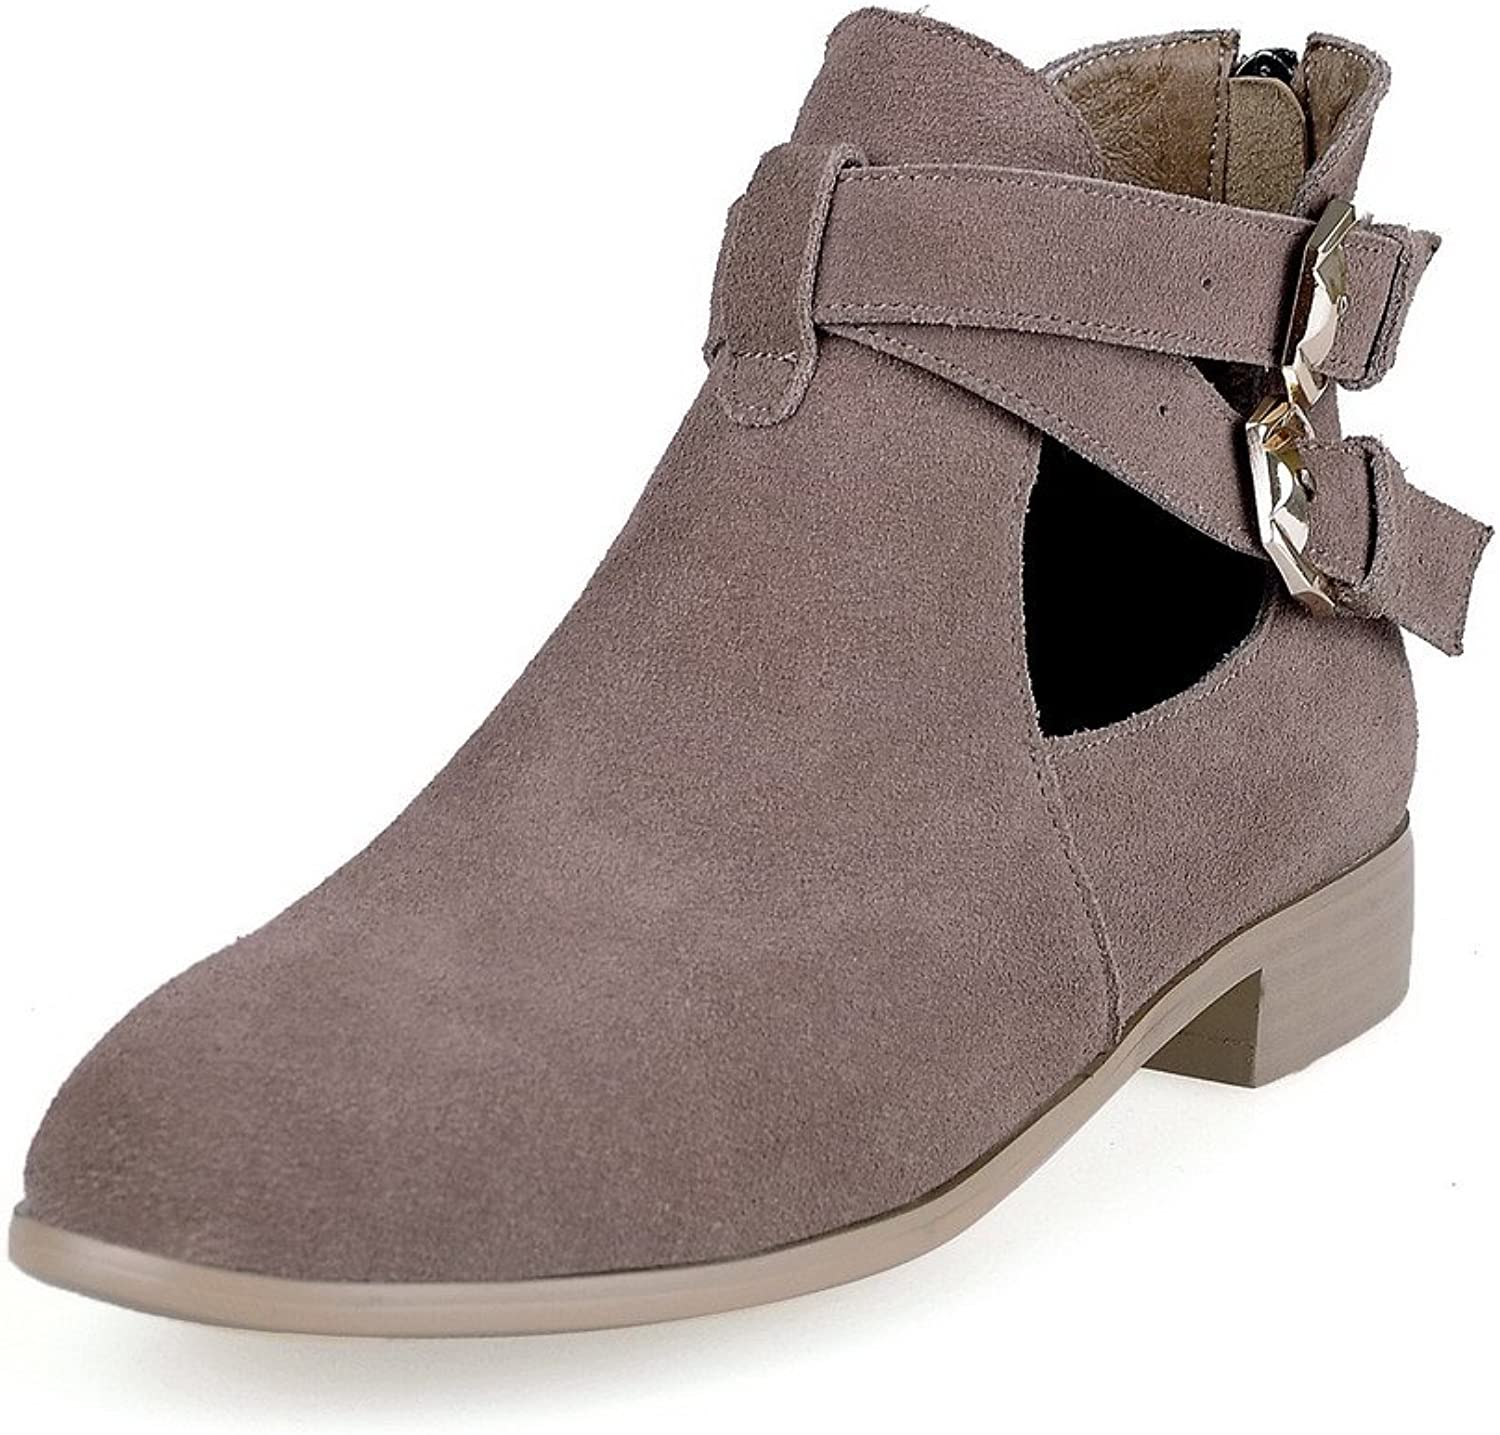 AmoonyFashion Women's Round-Toe Closed-Toe Low-Heels Boots with Square Heels and Back Zipper